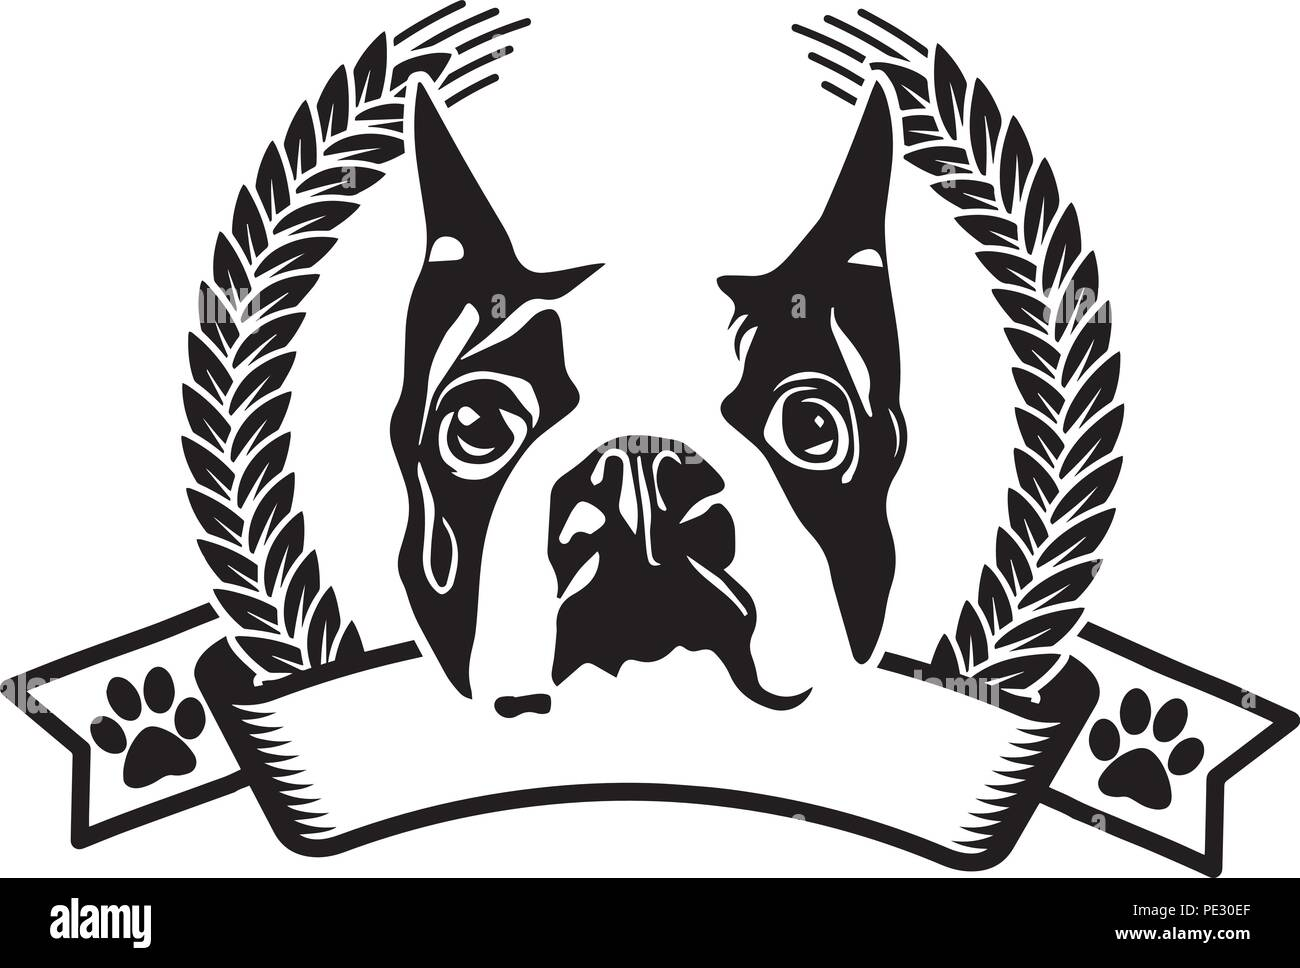 Boston Terrier Bostie Dog Breed Pet Puppy Isolated Head Face Stock Vector